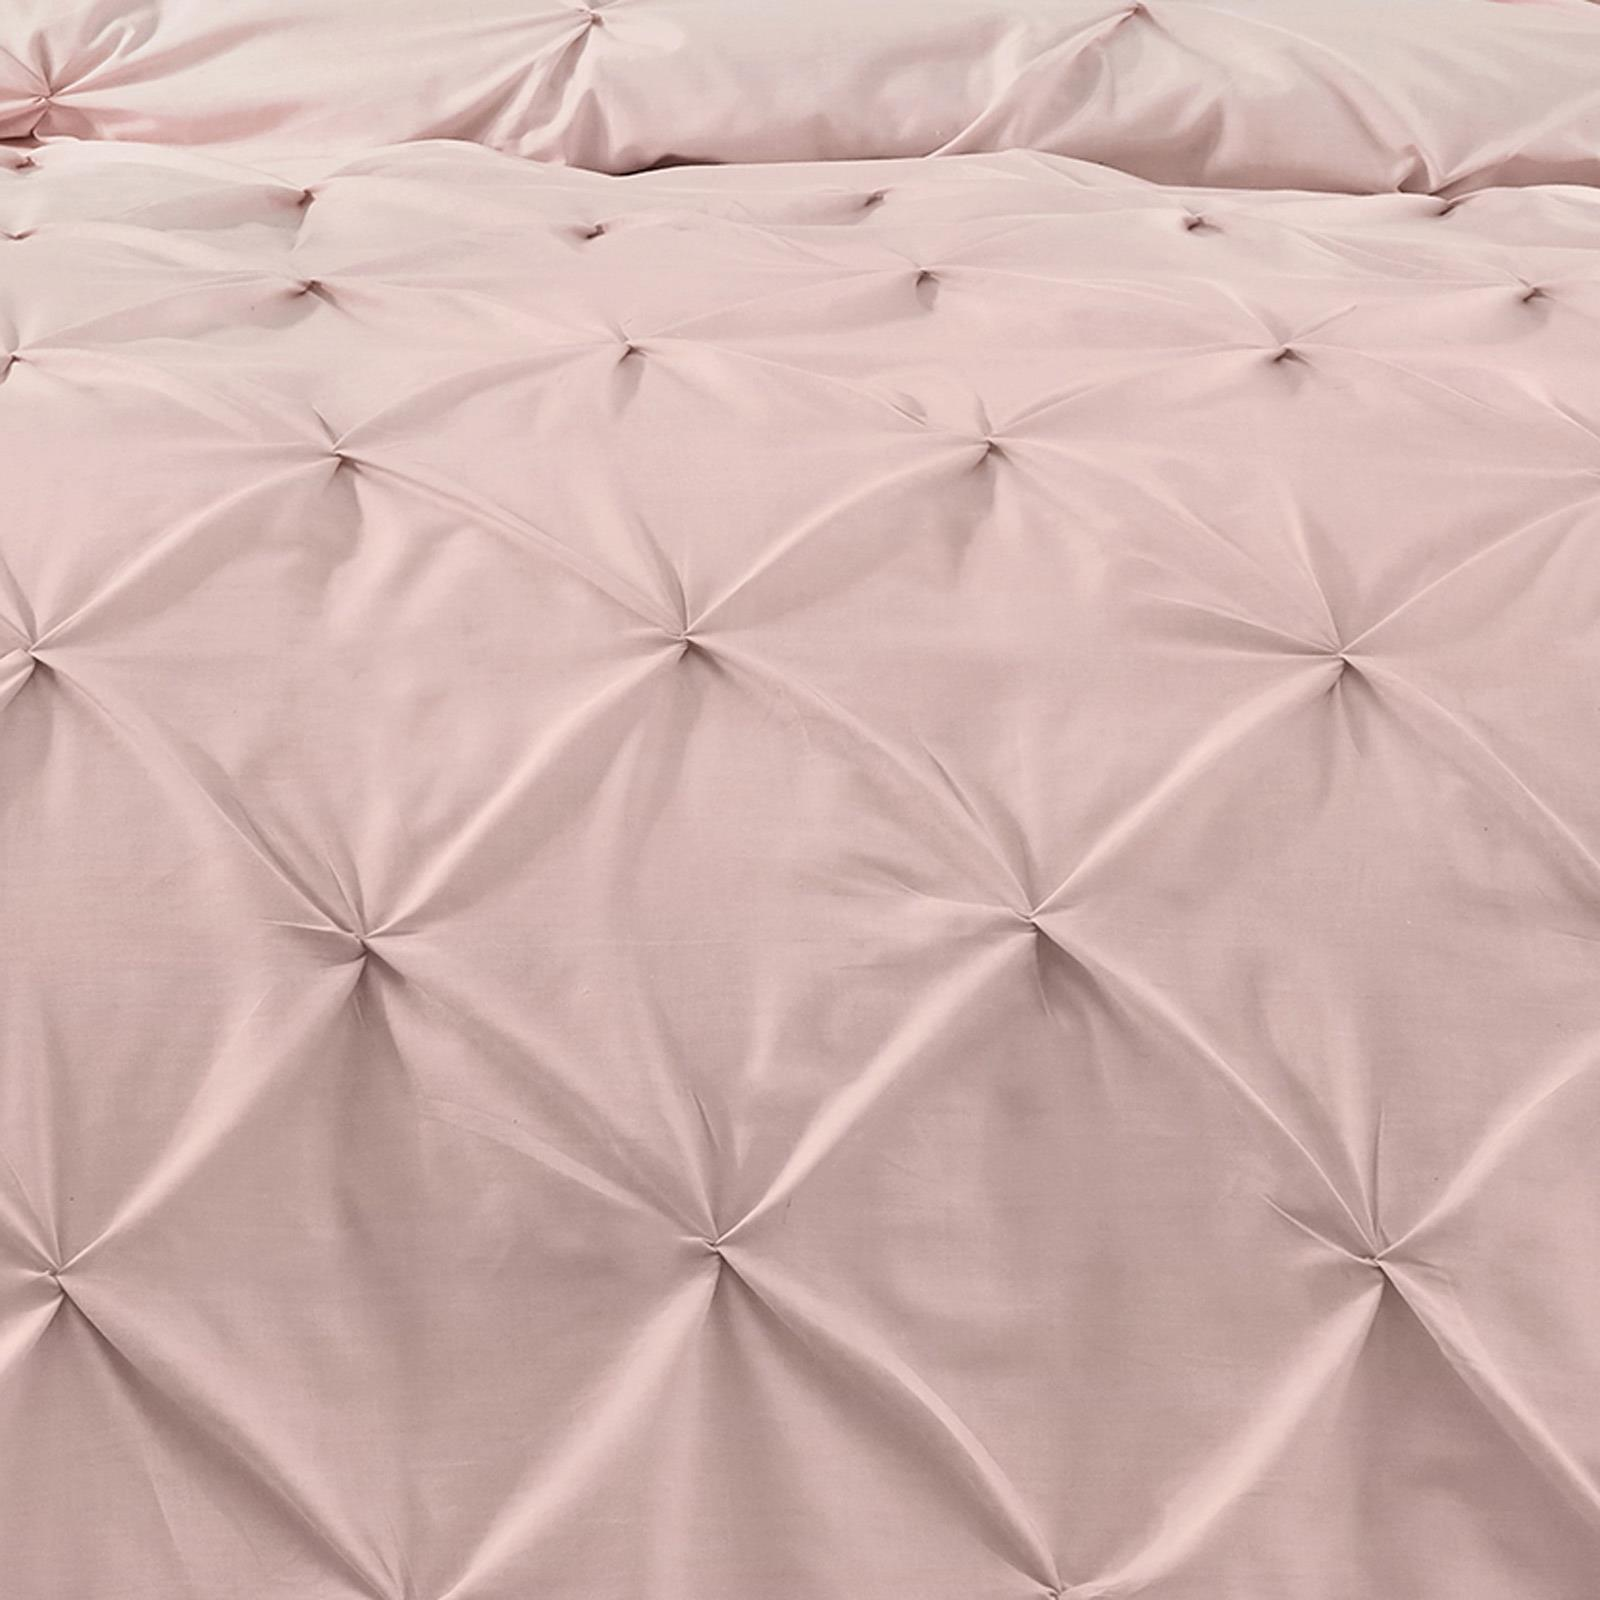 Blush-Duvet-Covers-Ruched-Pin-Tuck-Stitched-Plain-Pink-Quilt-Cover-Bedding-Sets thumbnail 3